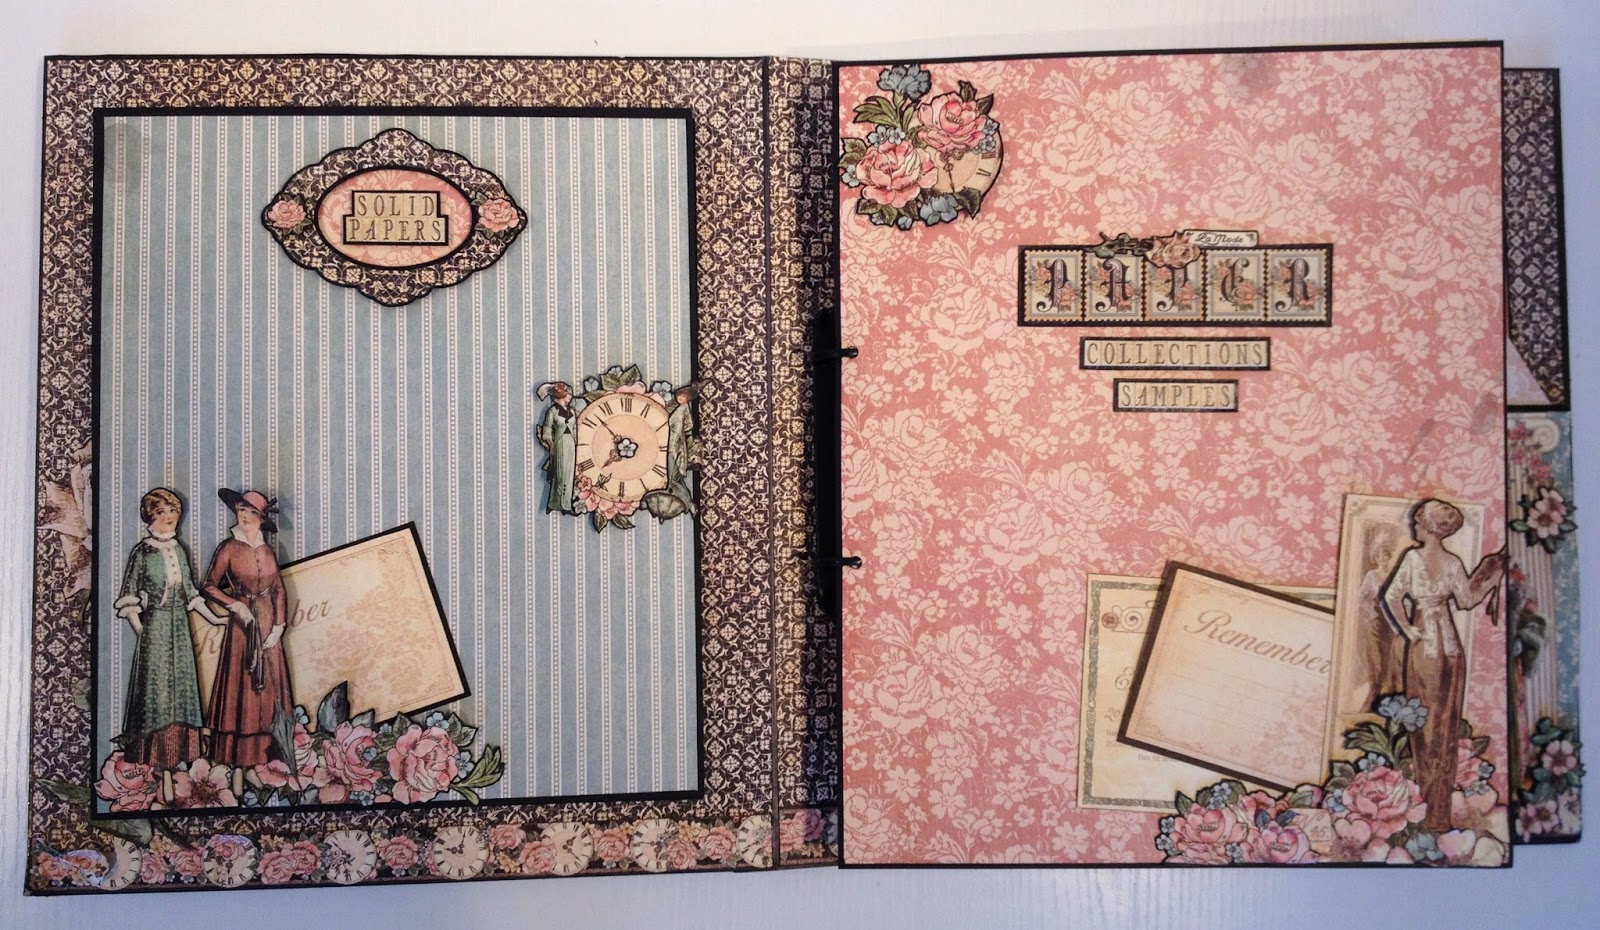 How to make scrapbook binder - Here I Have Added All The Collection Samples On The Binder